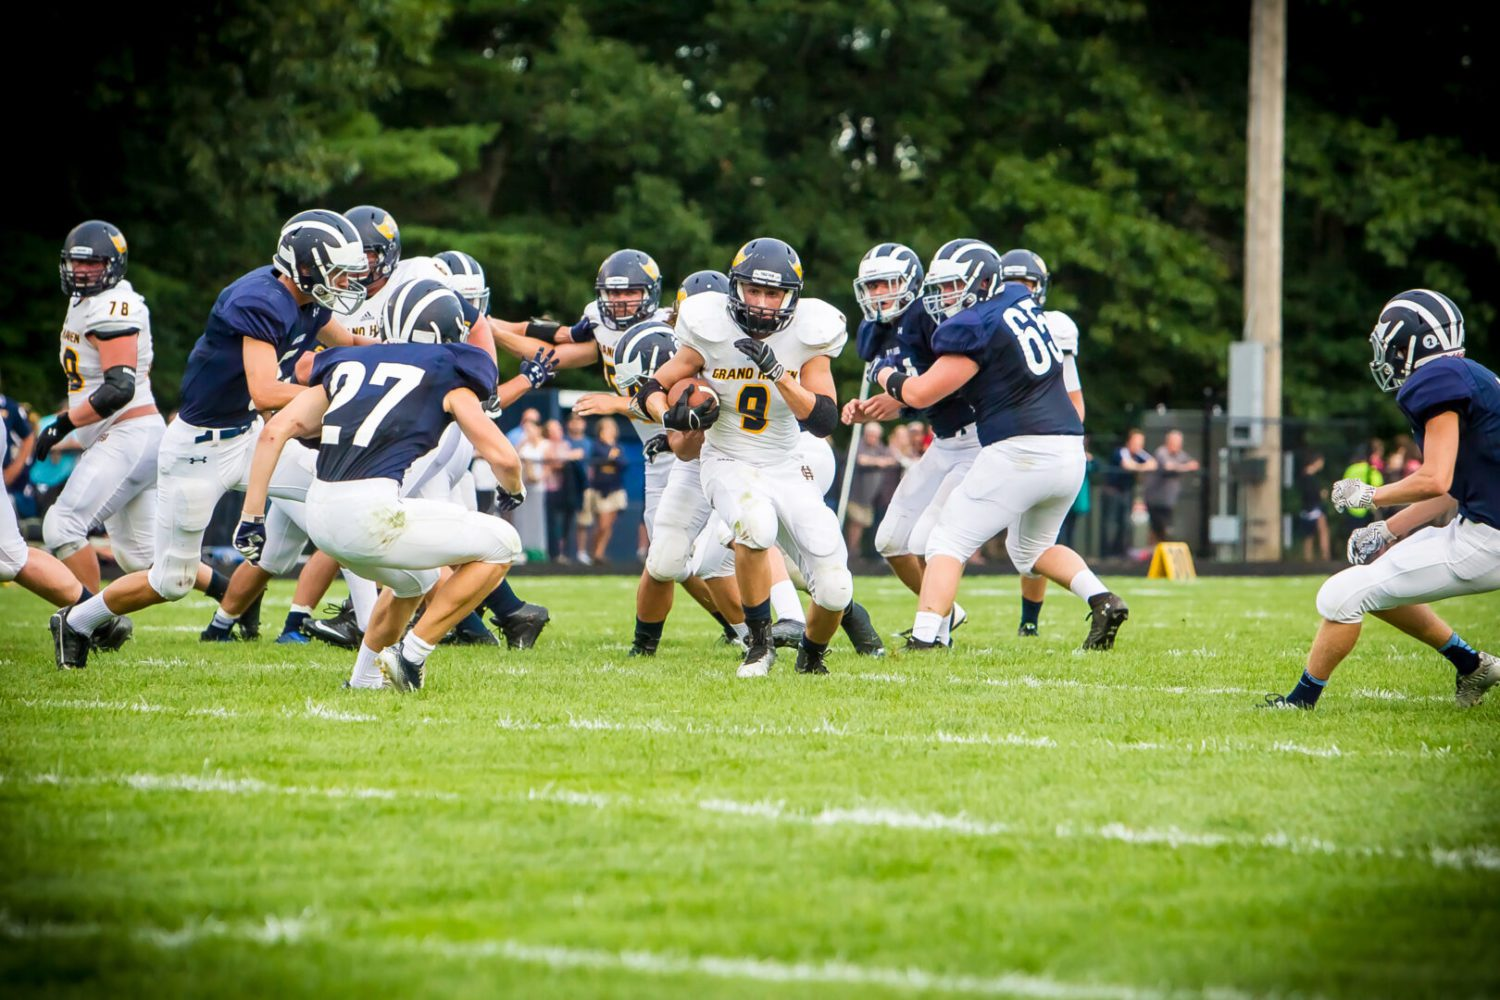 Late field goal gives Grand Haven a thrilling 17-14 win over Fruitport